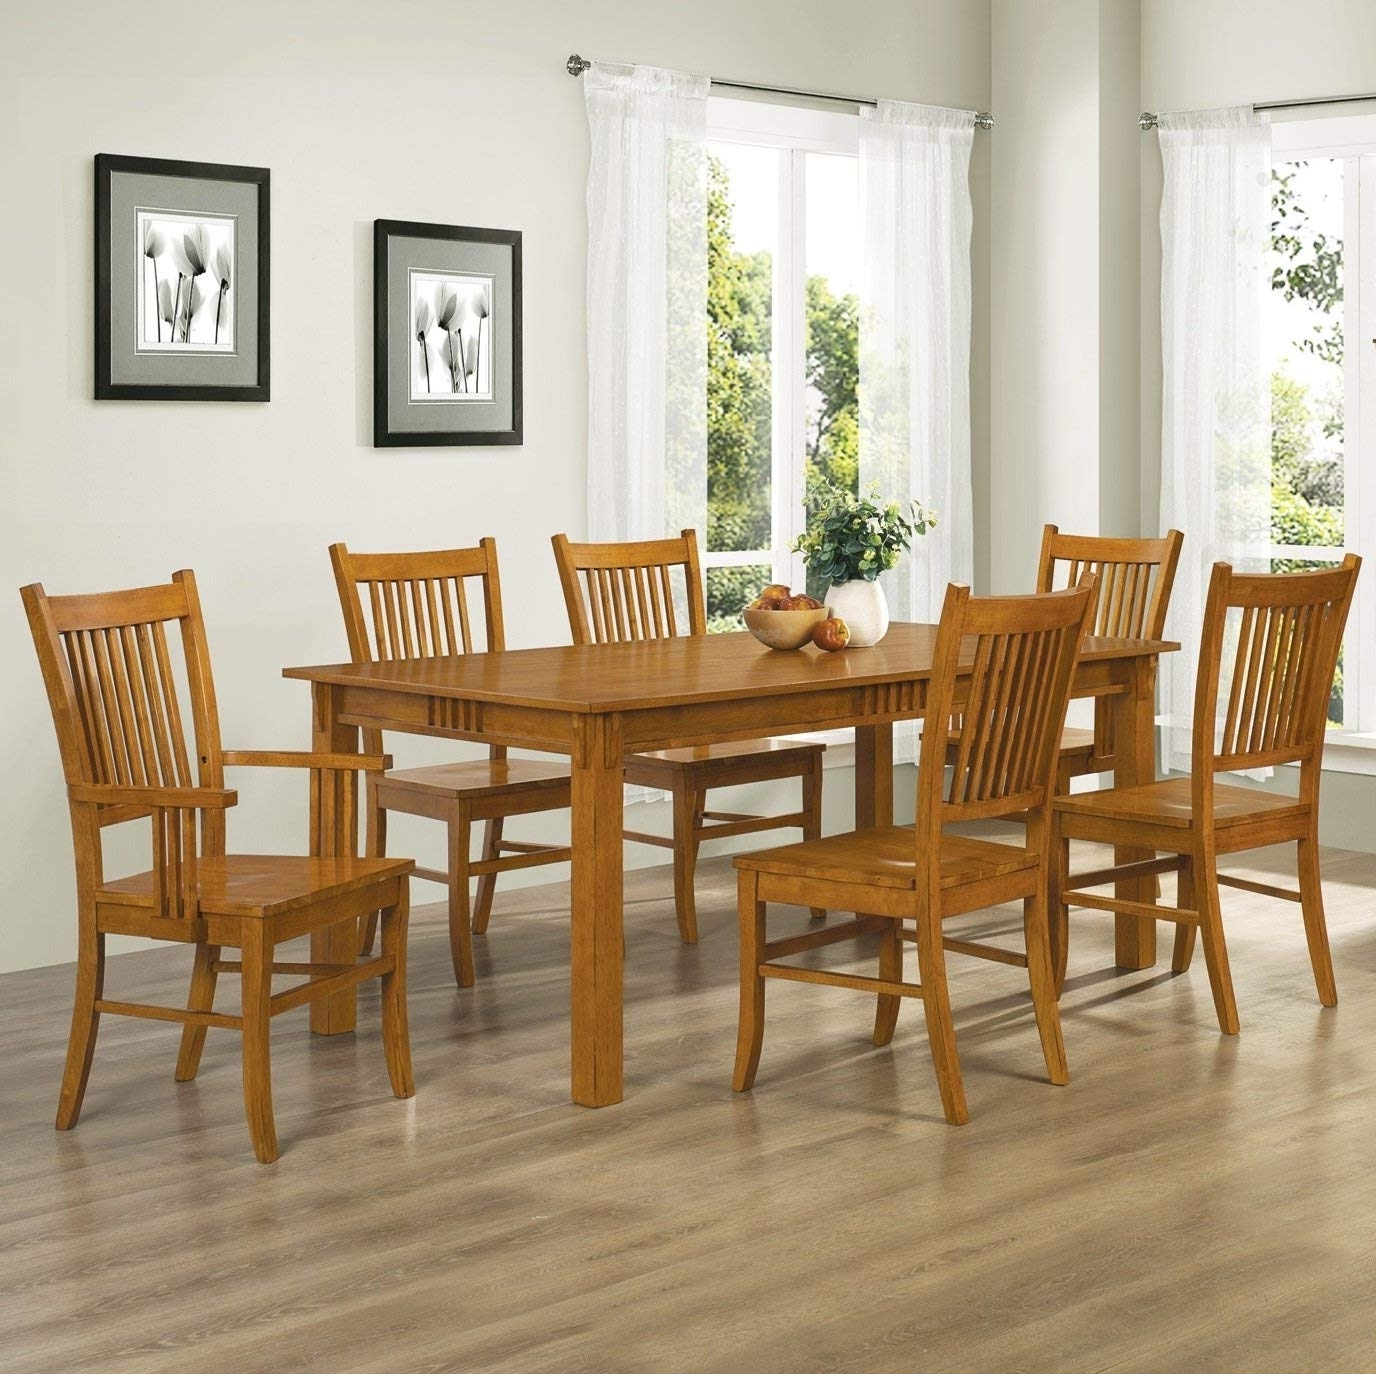 Amazon – Coaster Home Furnishings 7 Piece Mission Style Solid Within Most Recent Craftsman 5 Piece Round Dining Sets With Uph Side Chairs (Gallery 16 of 25)